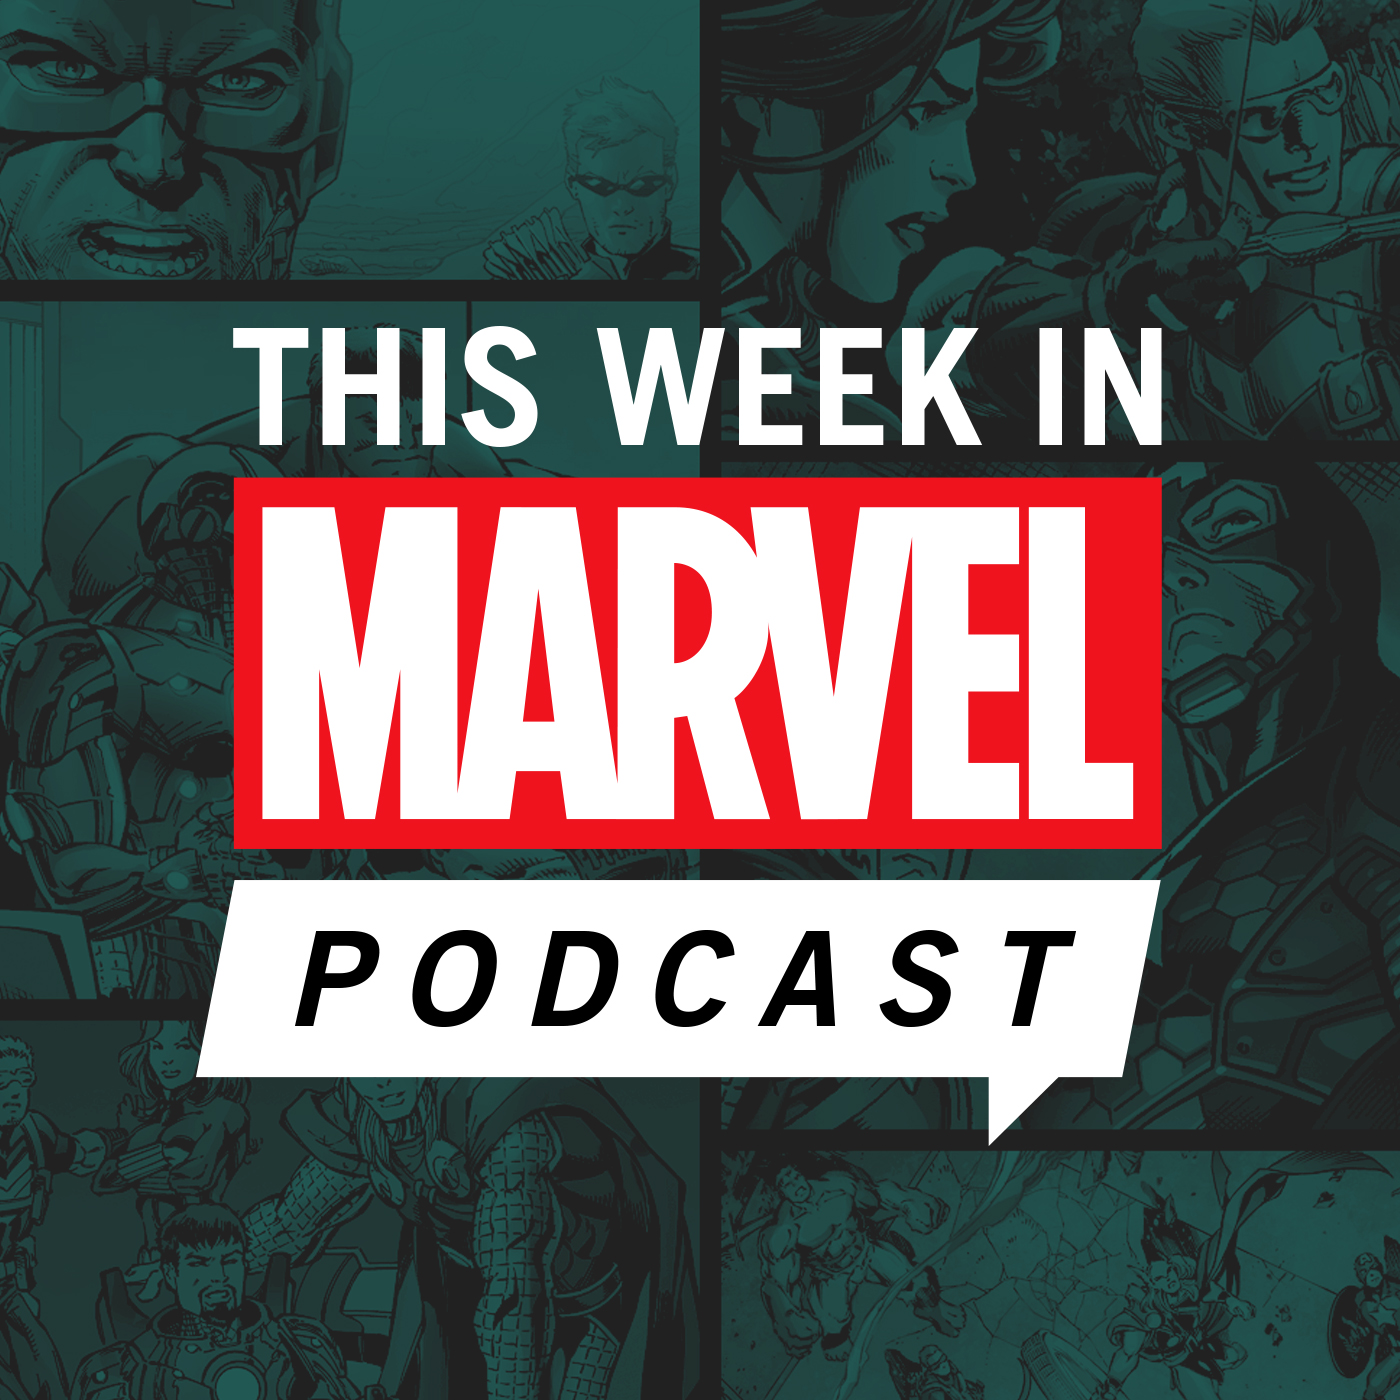 <![CDATA[This Week in Marvel]]>